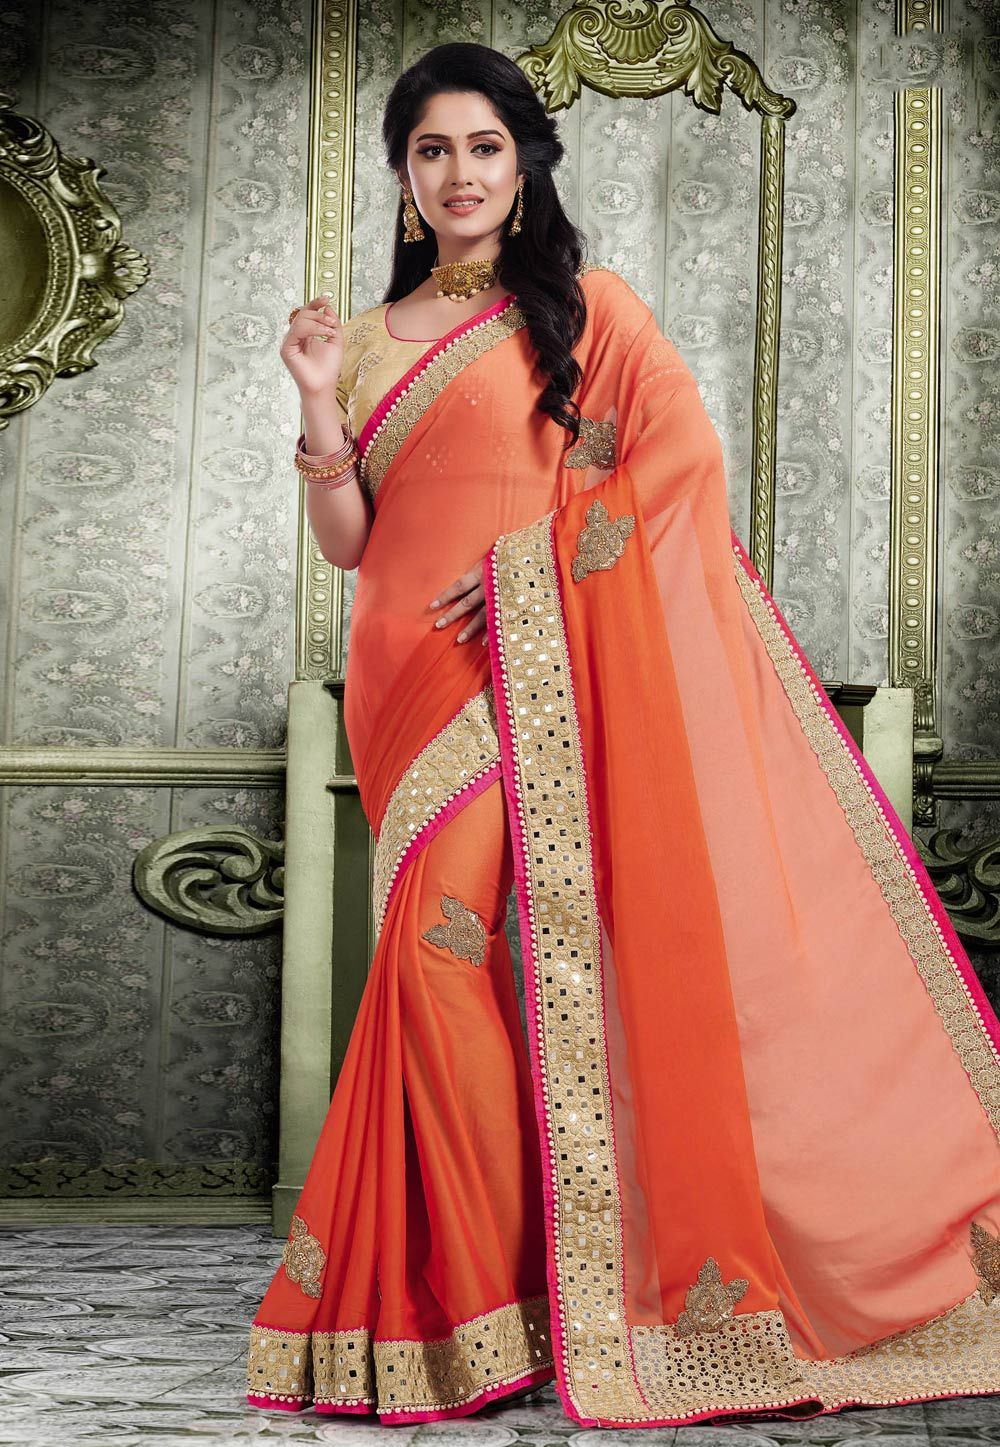 453aef7884f643 Buy Orange Chiffon Embroidered Saree With Blouse 155365 with blouse online  at lowest price from vast collection of sarees at Indianclothstore.com.